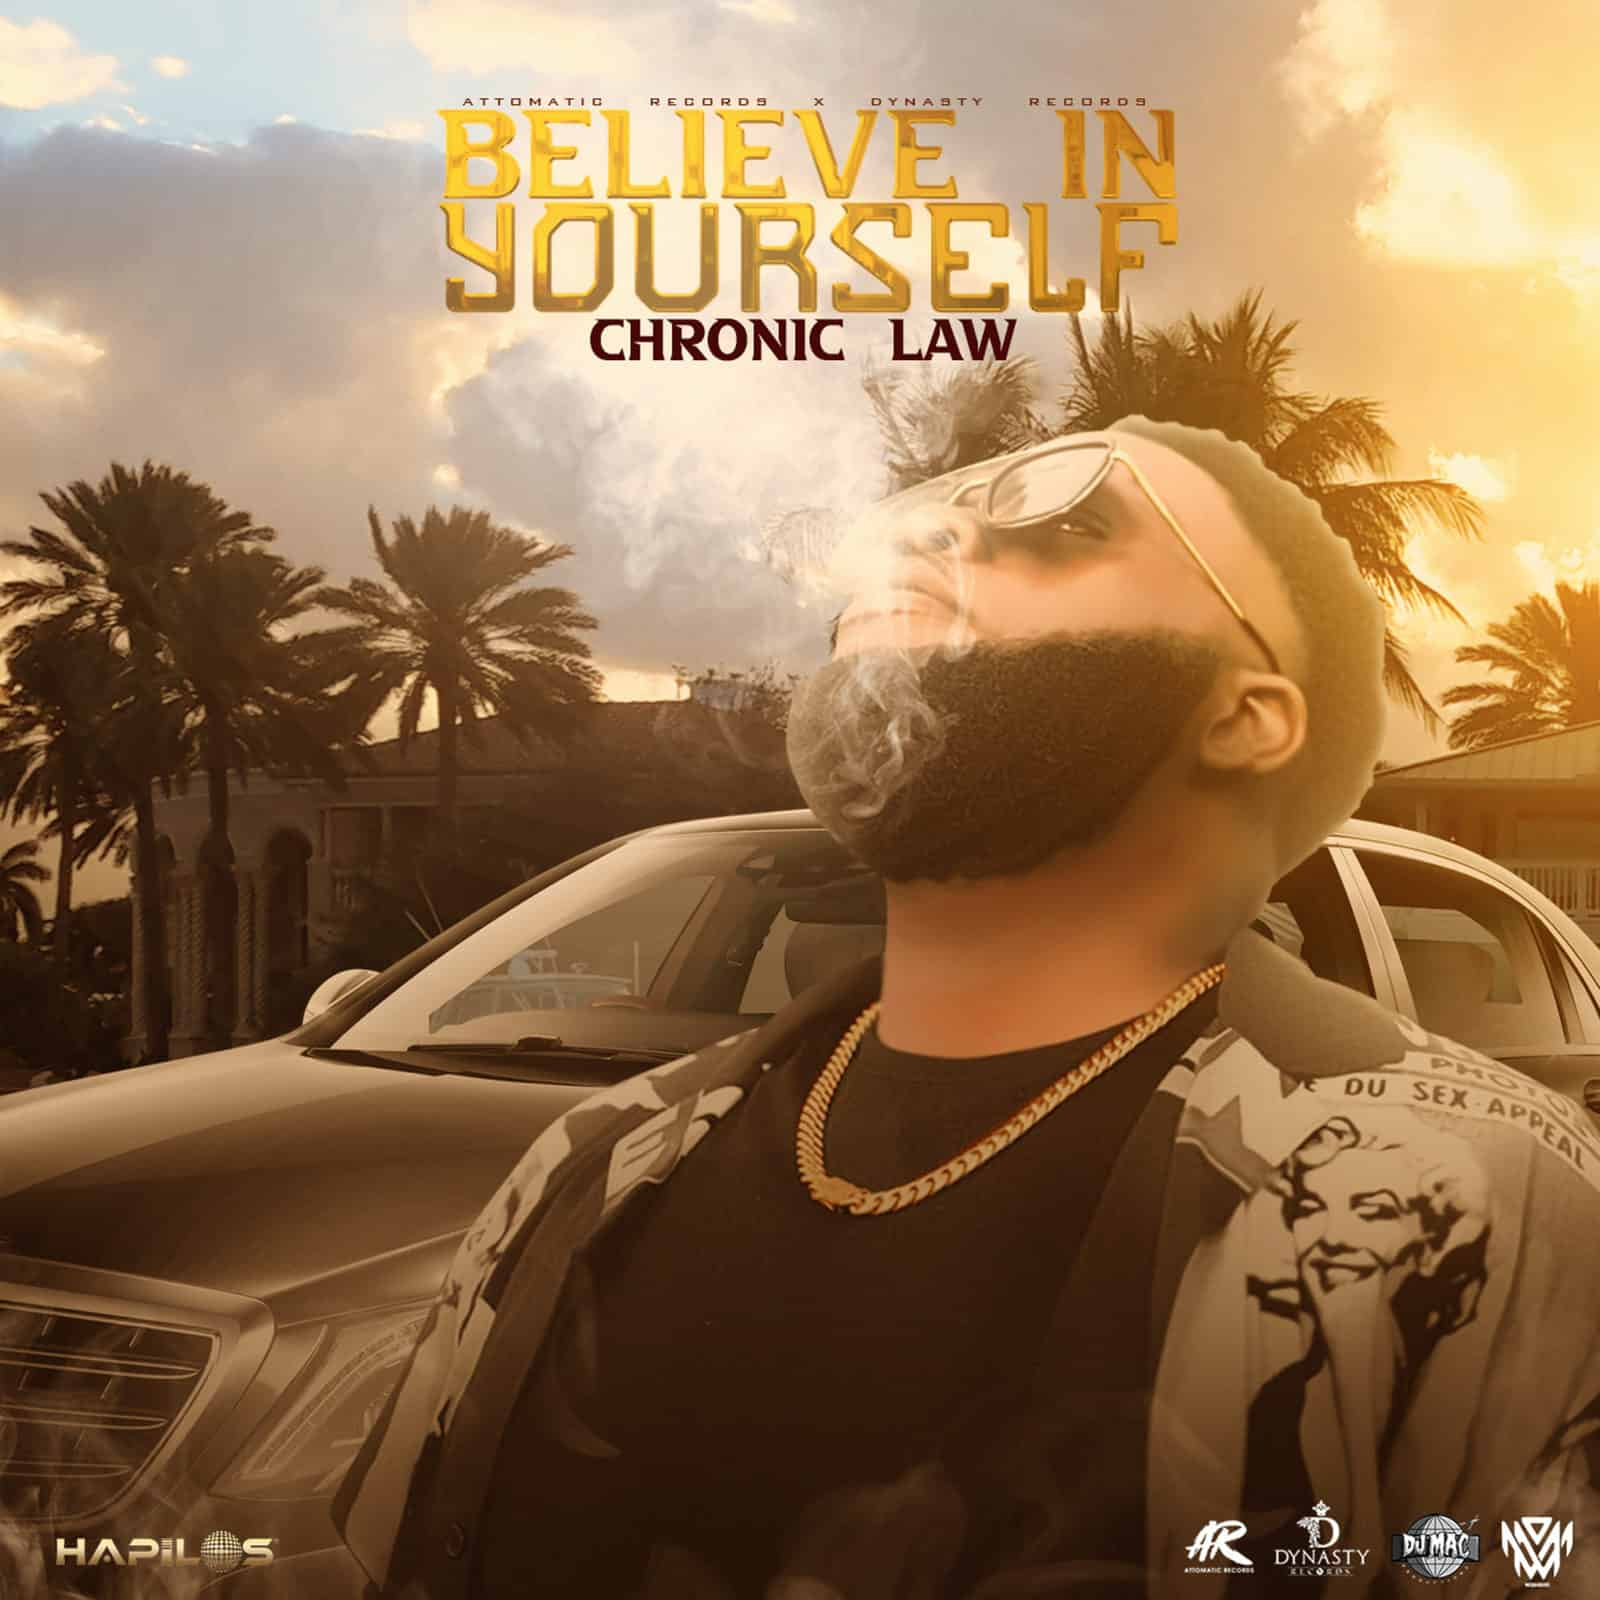 Chronic Law - Believe In Yourself - Dynasty Entertainment Group / Attomatic Records